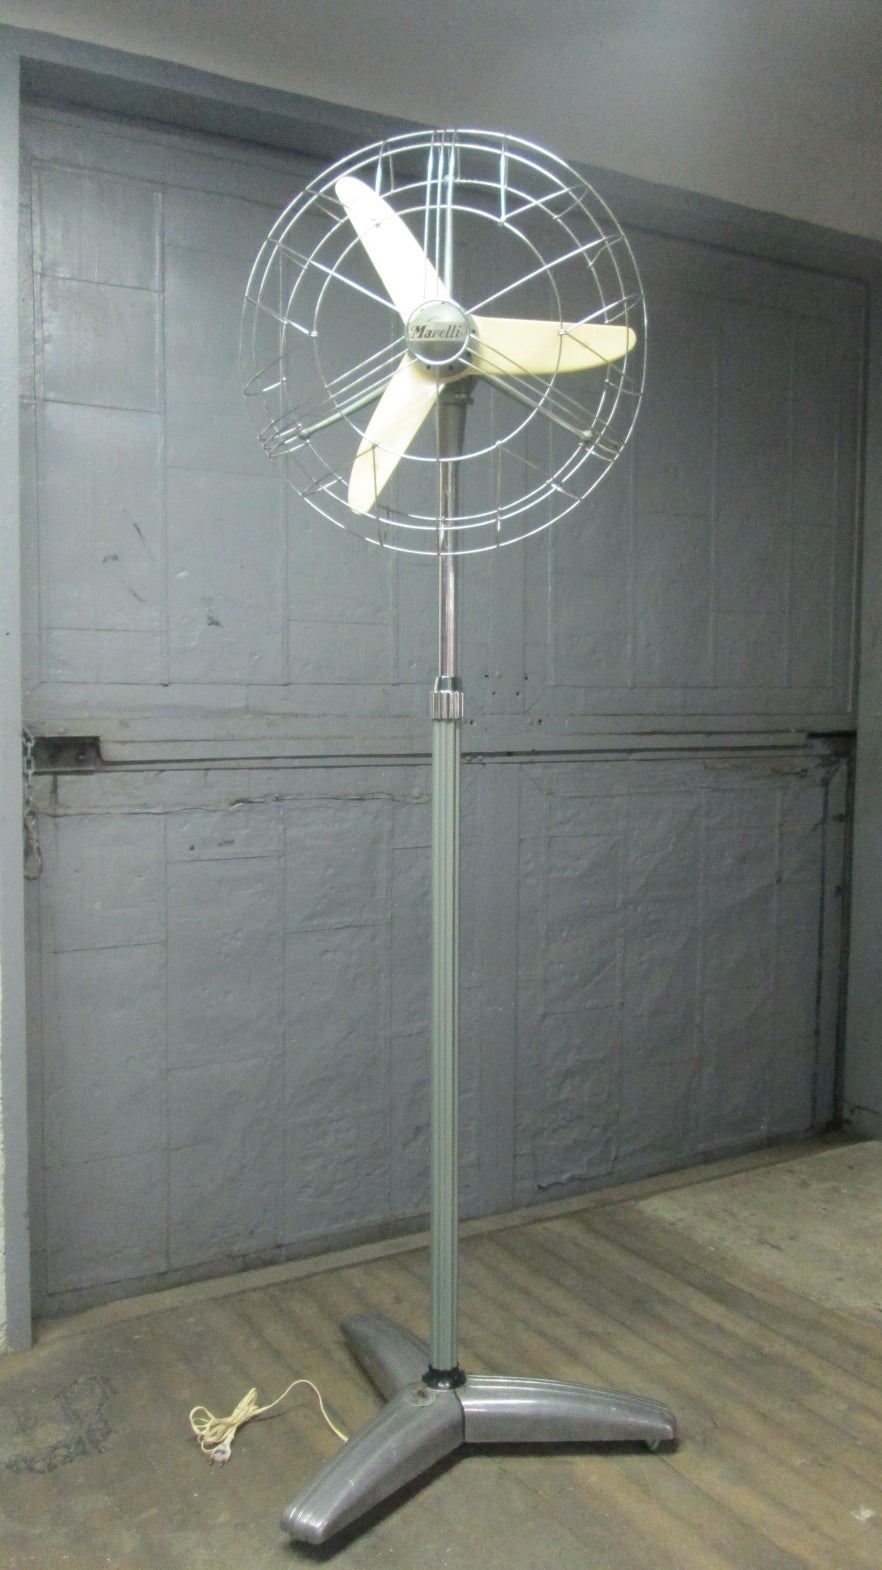 Rare vintage marelli floor fan fan has wheels for easy moving and is height adjustable